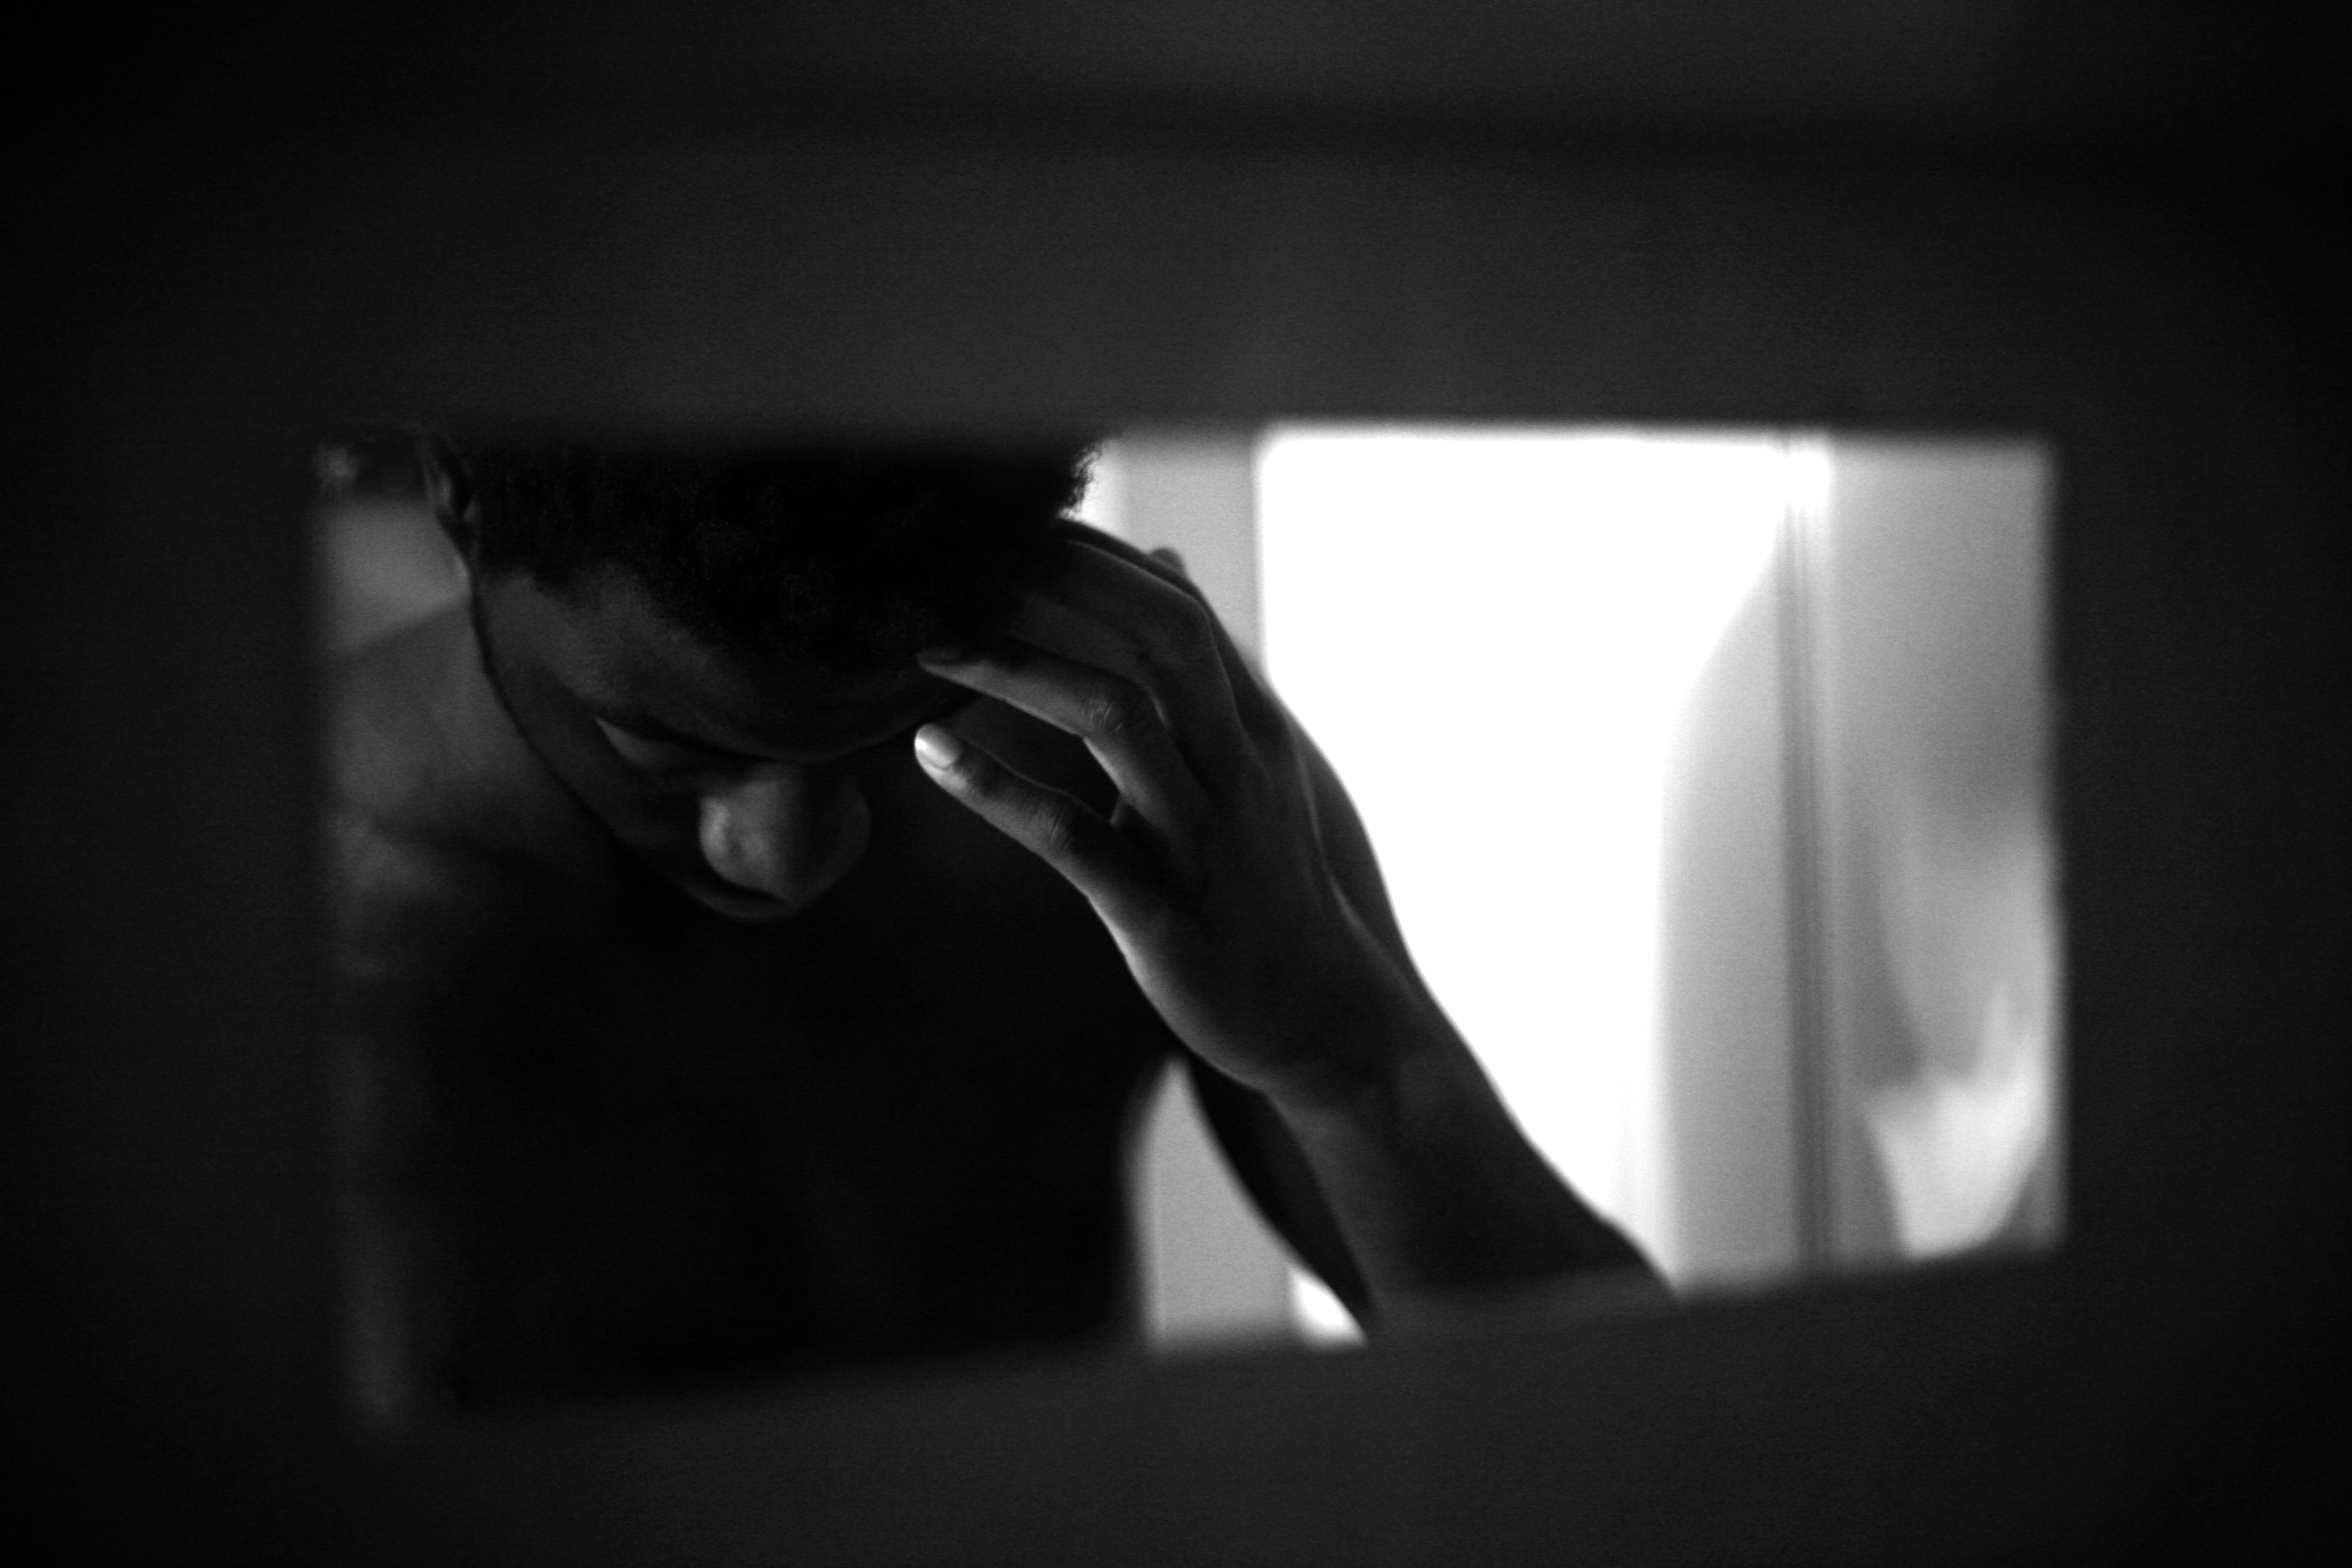 Lack of positive references is one of the causes of suicide in Blacks